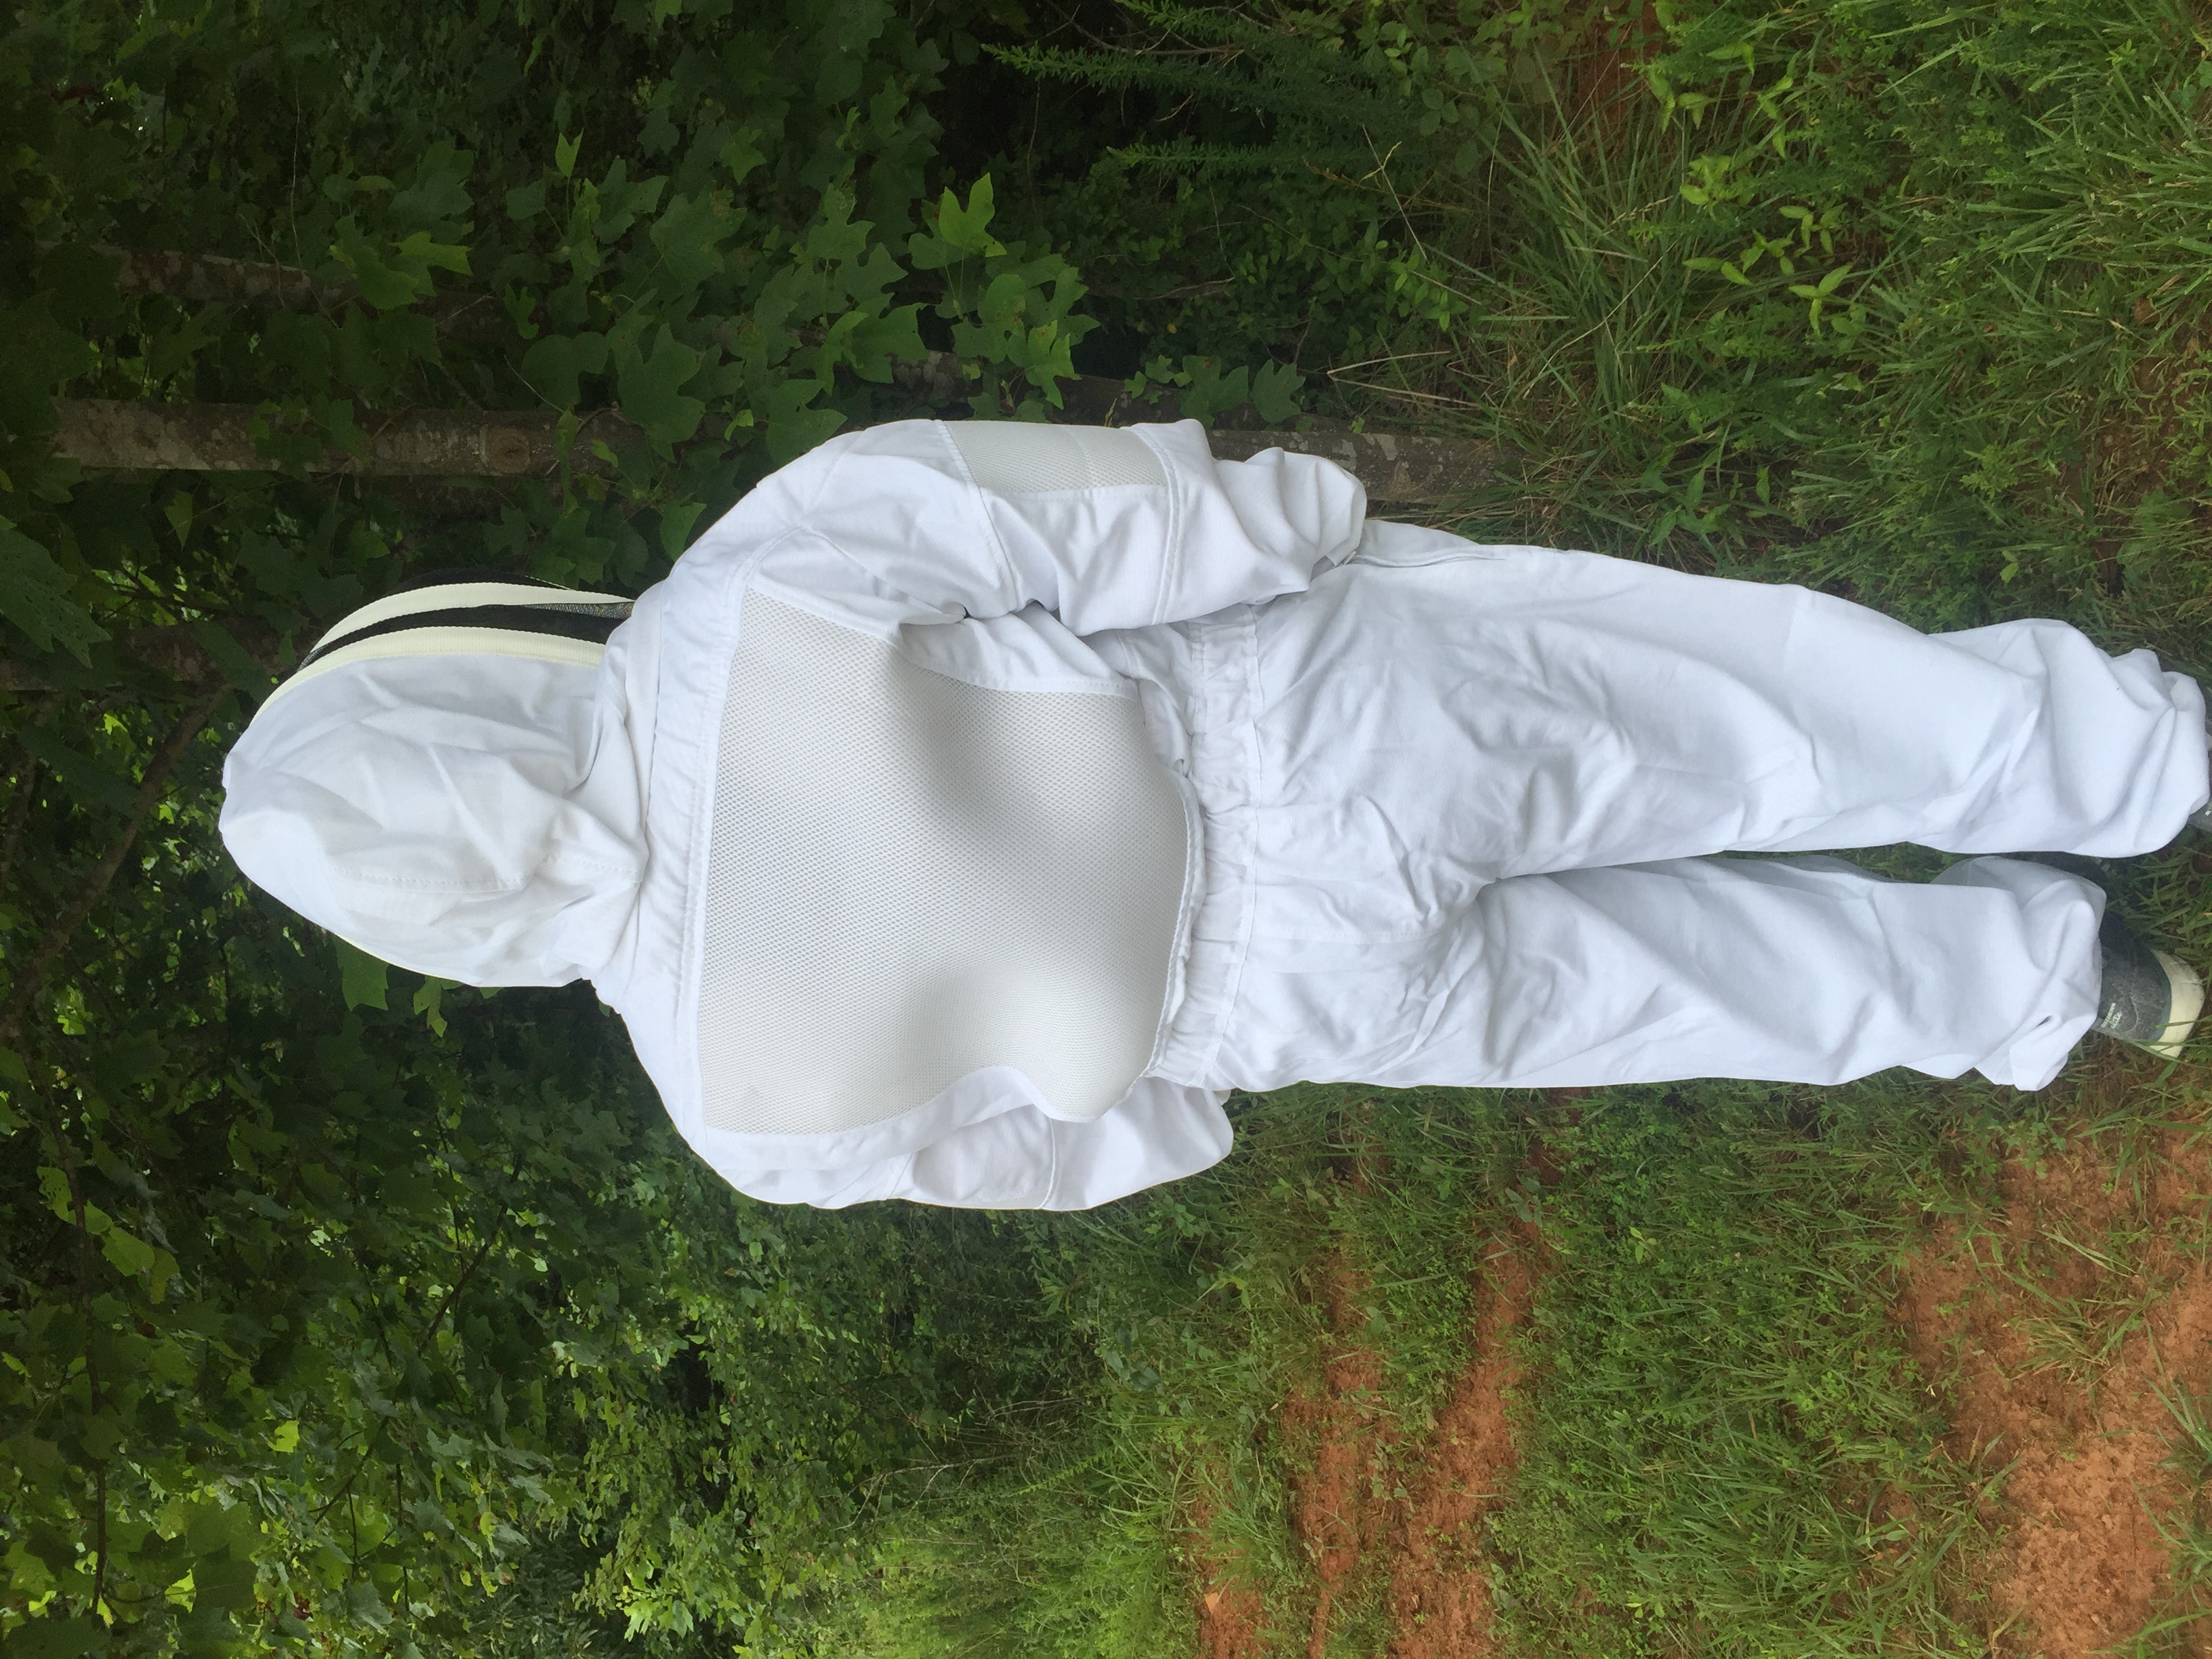 Apollo Ventilated Full Suit